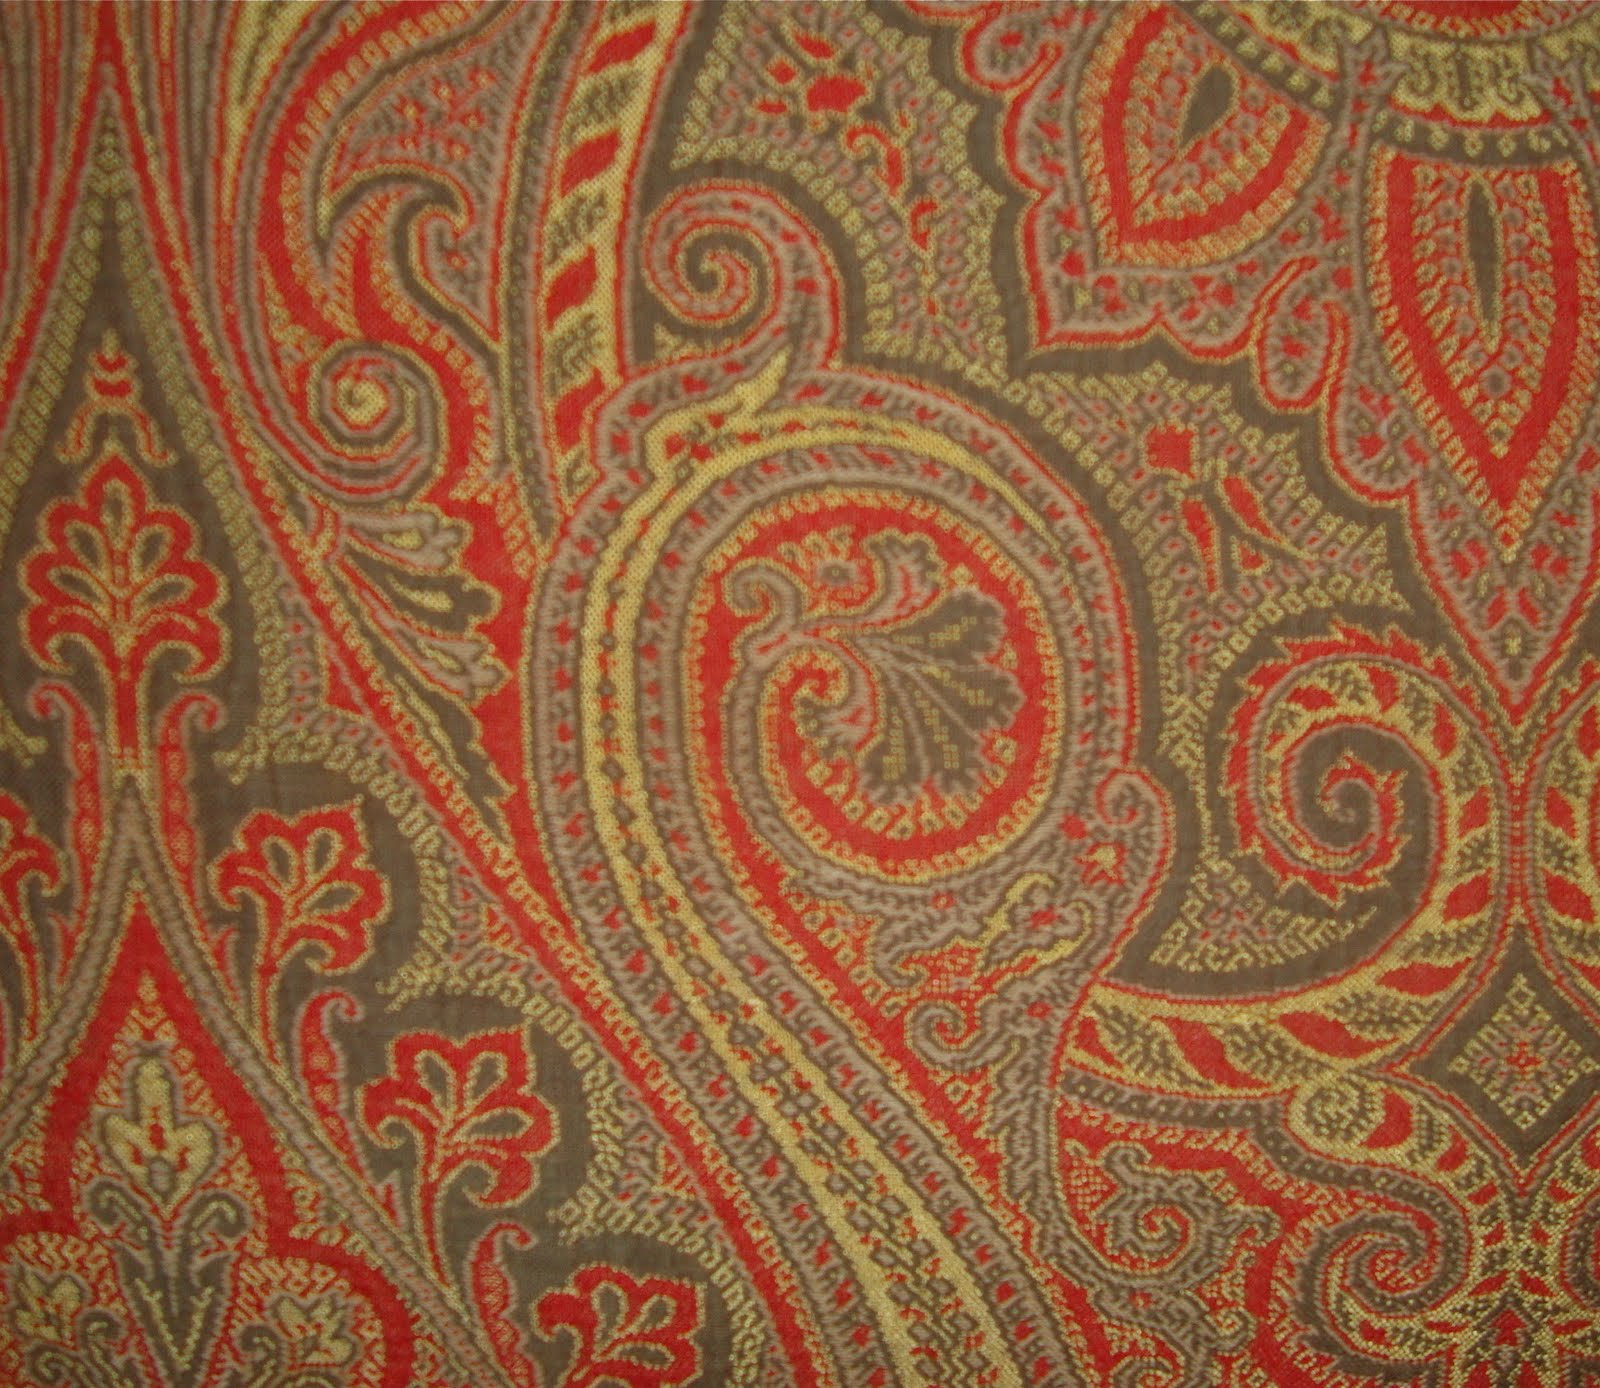 Morgaine Le Fay antique Textiles and More: Paisley Shawls